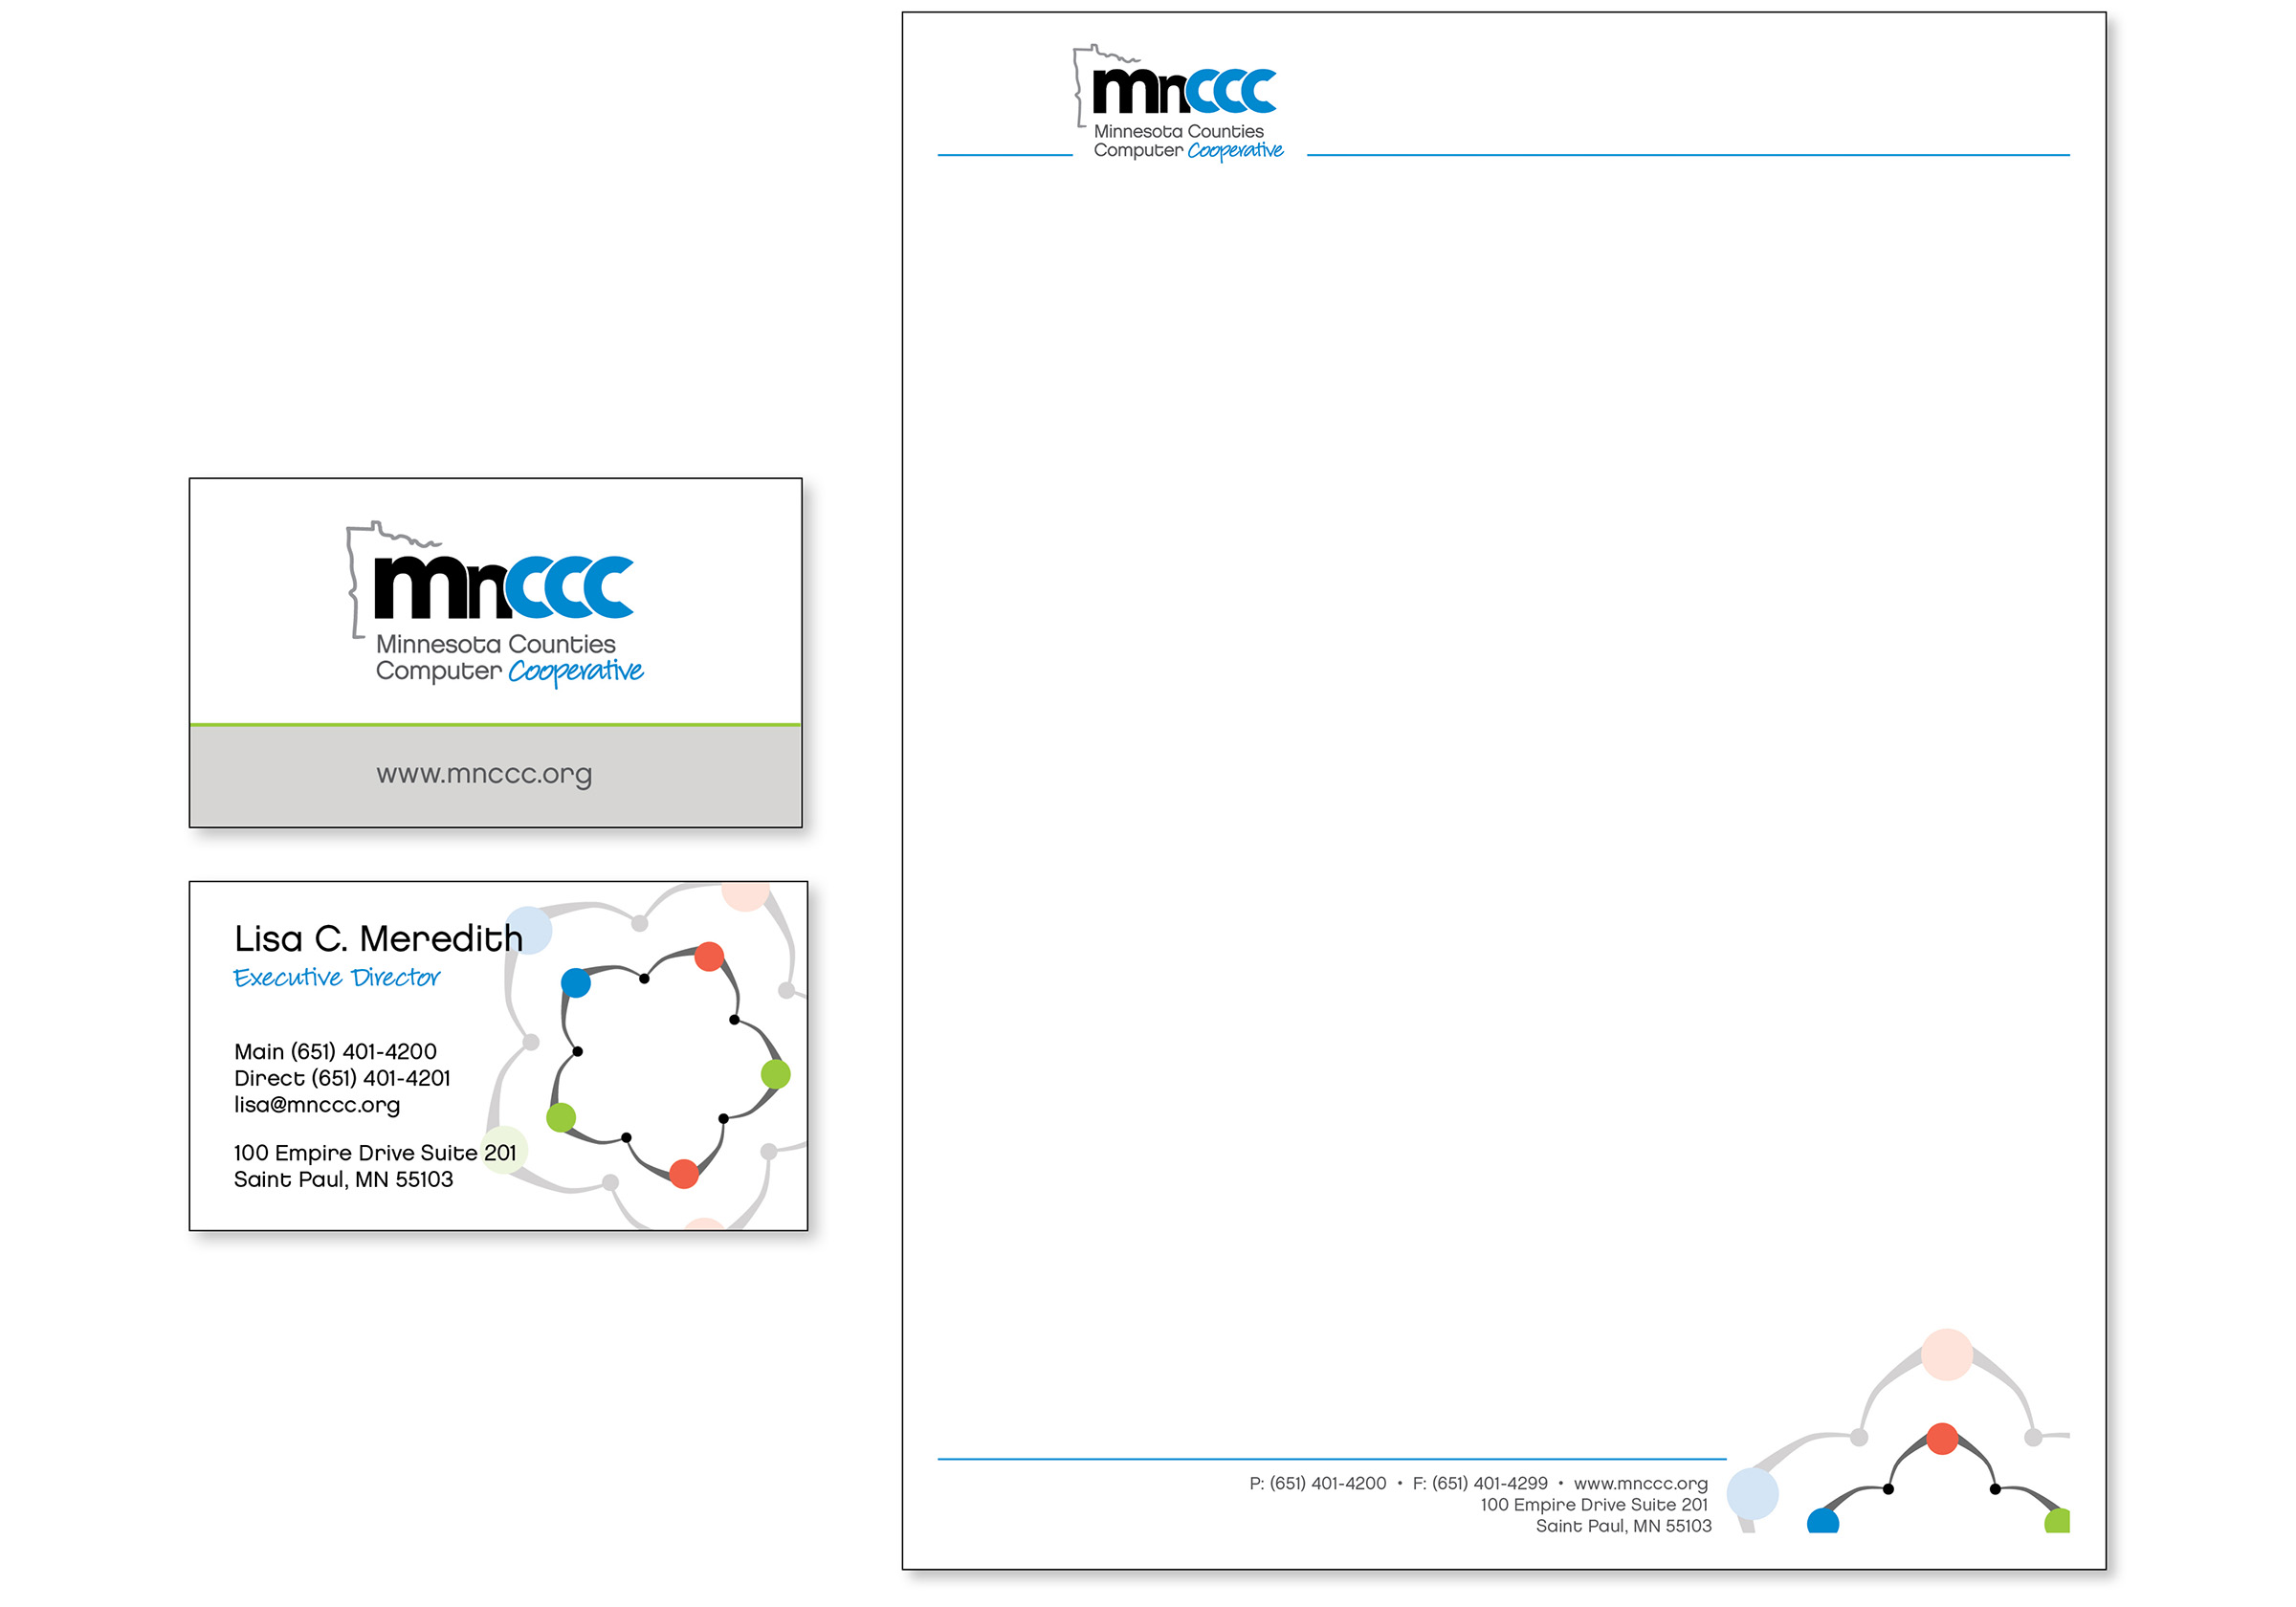 Image showing designs of identity materials created for MnCCC, including business cards and letterhead.